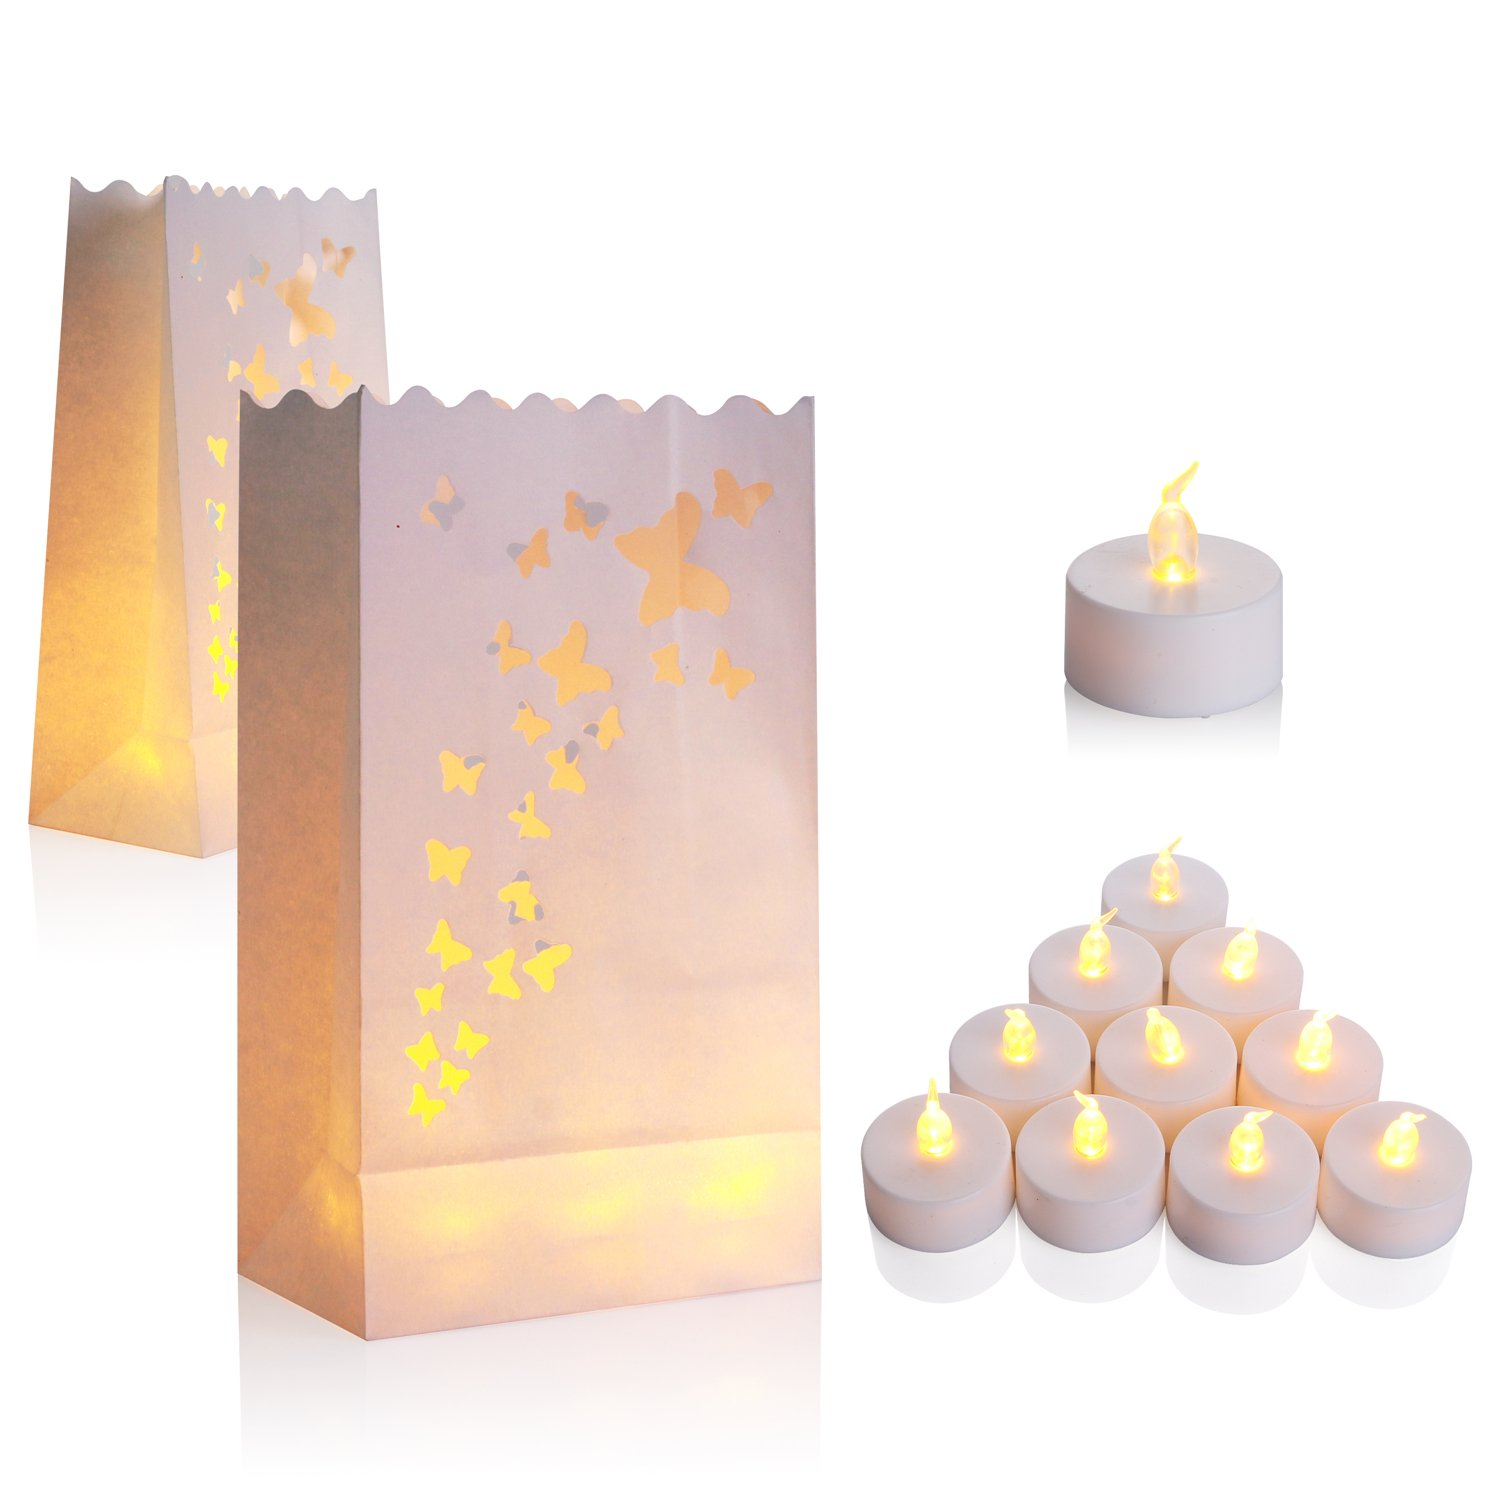 50-Set Flameless Tealight + Candle Bag, AceList Flickering LED Tealight Tea Lights w/ Flame Resistant Paper Luminary Bags for Wedding, Reception, Party and Event Decor